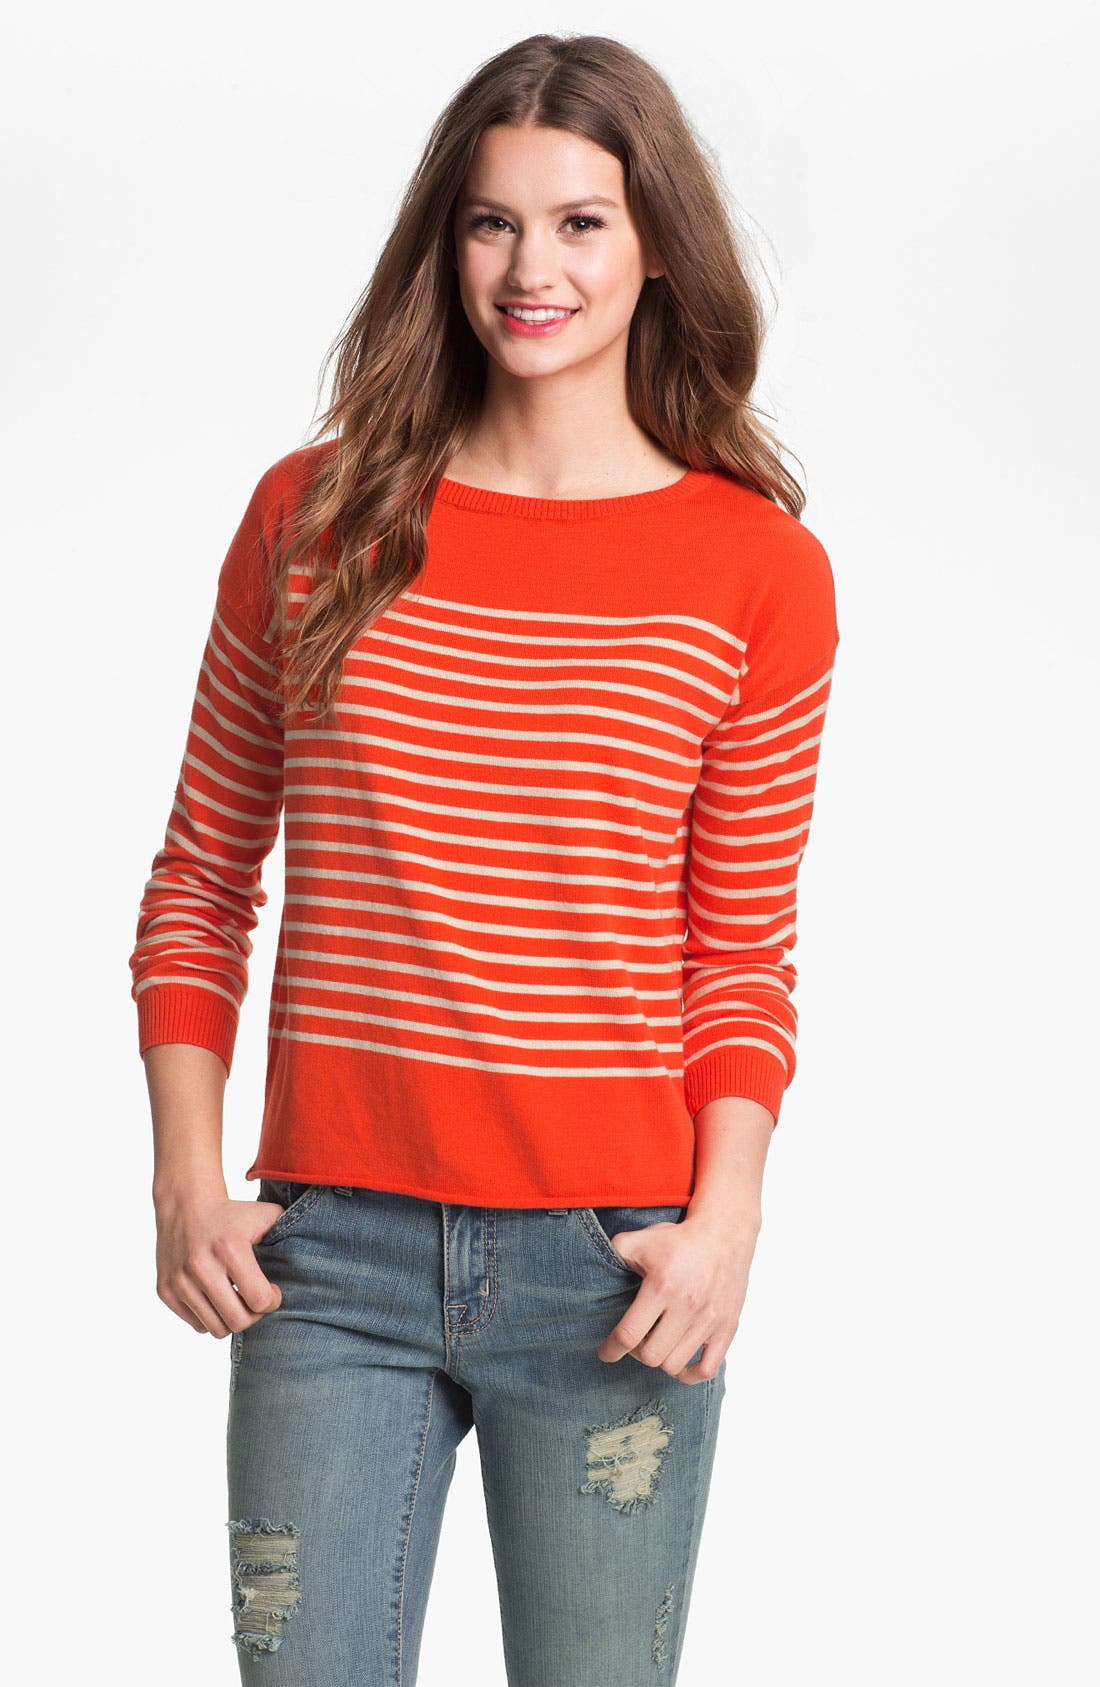 Alternate Image 1 Selected - Two by Vince Camuto Bateau Neck Stripe Sweater